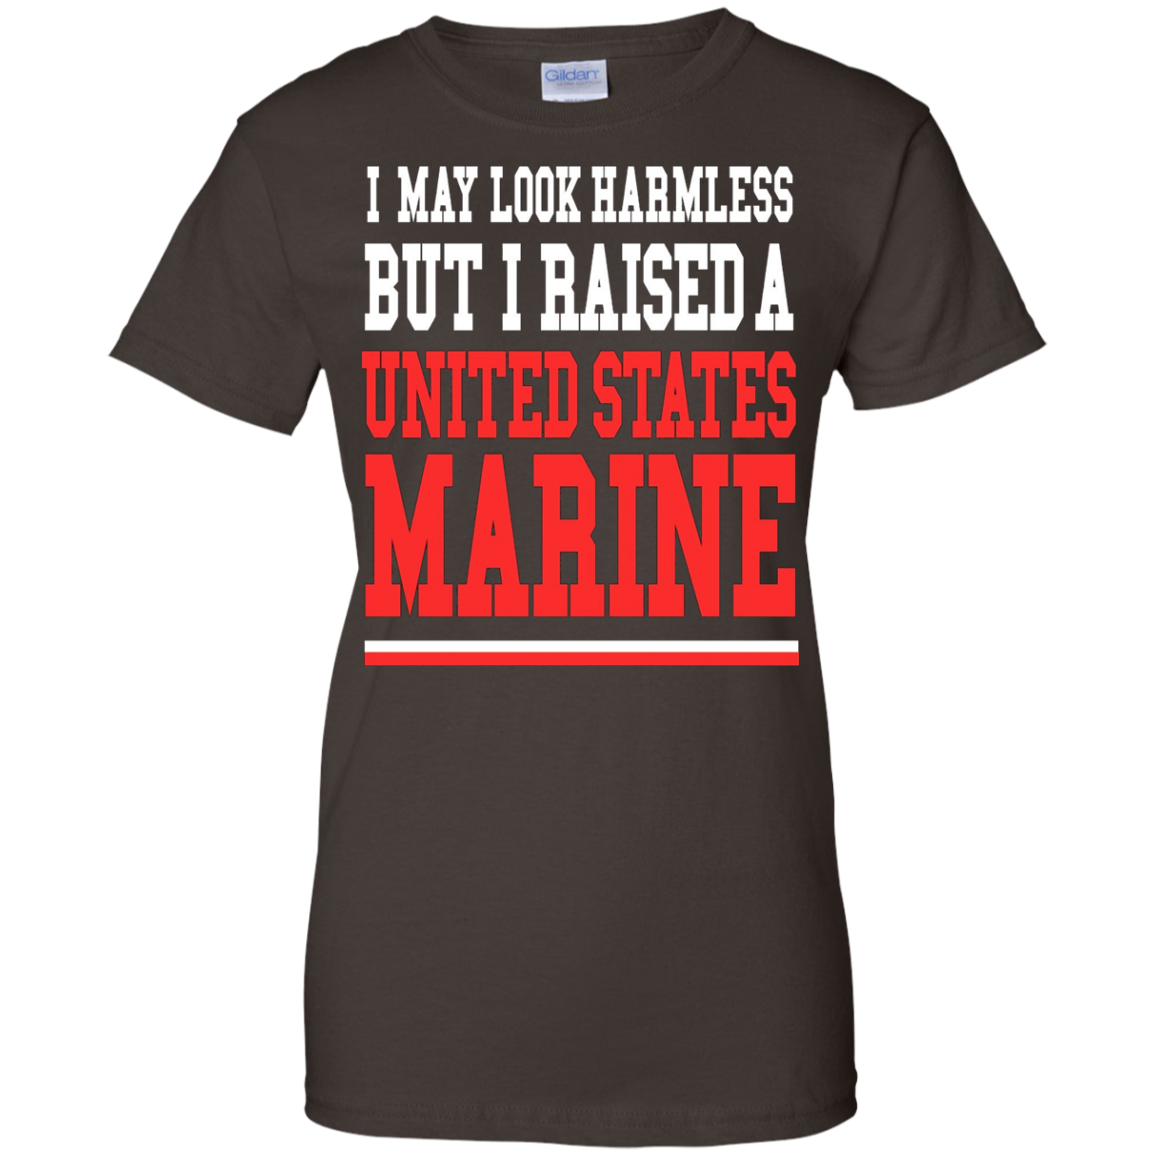 I May Look Harmless But I Raised United States Marine Tshirt